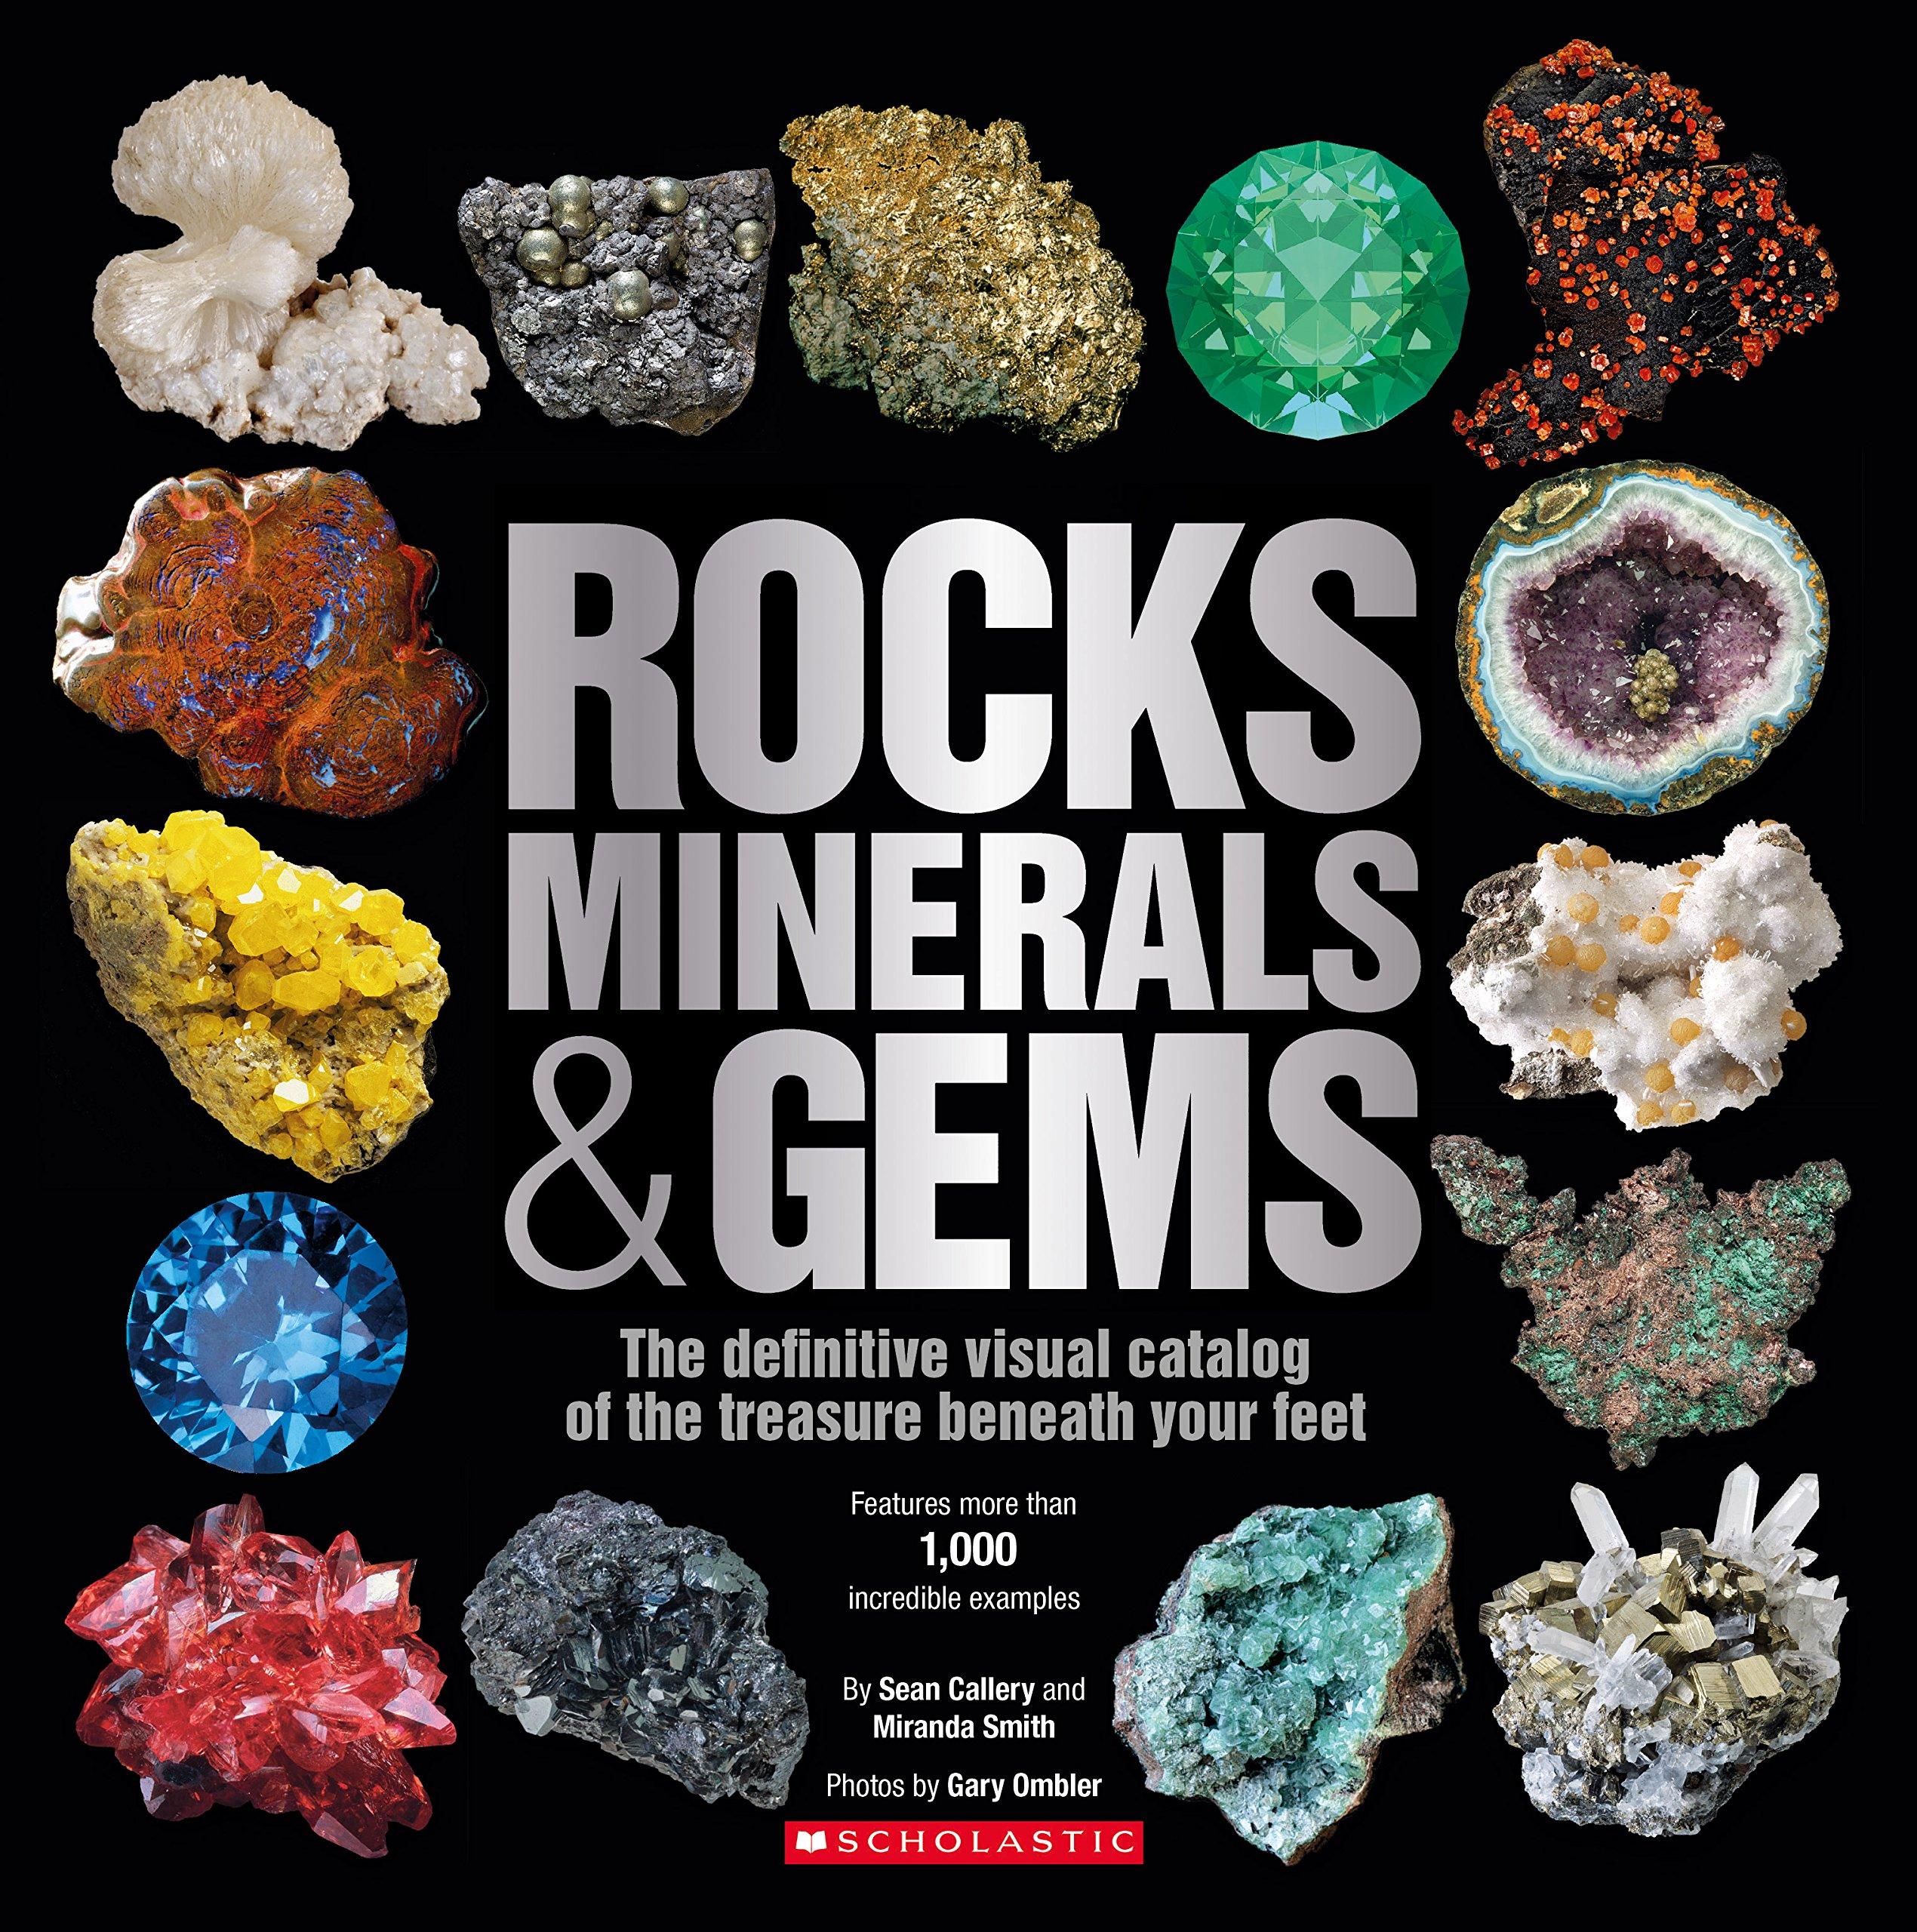 Rocks, Minerals & Gems: Amazon co uk: Scholastic, Miranda